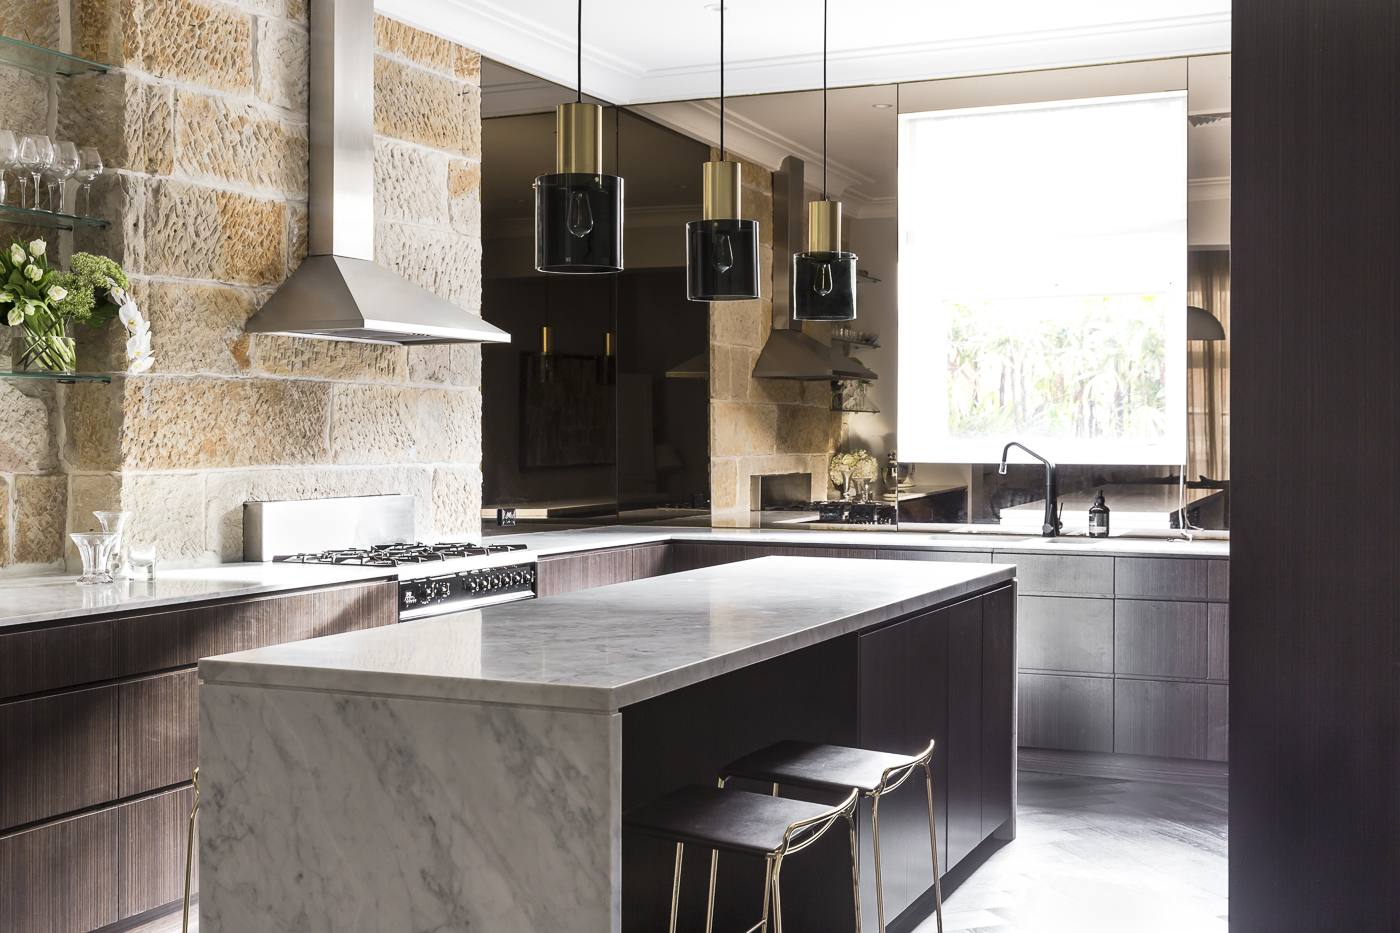 The sandstone, once revealed and celebrated,became a warm feature adding another layer of texture to the home.